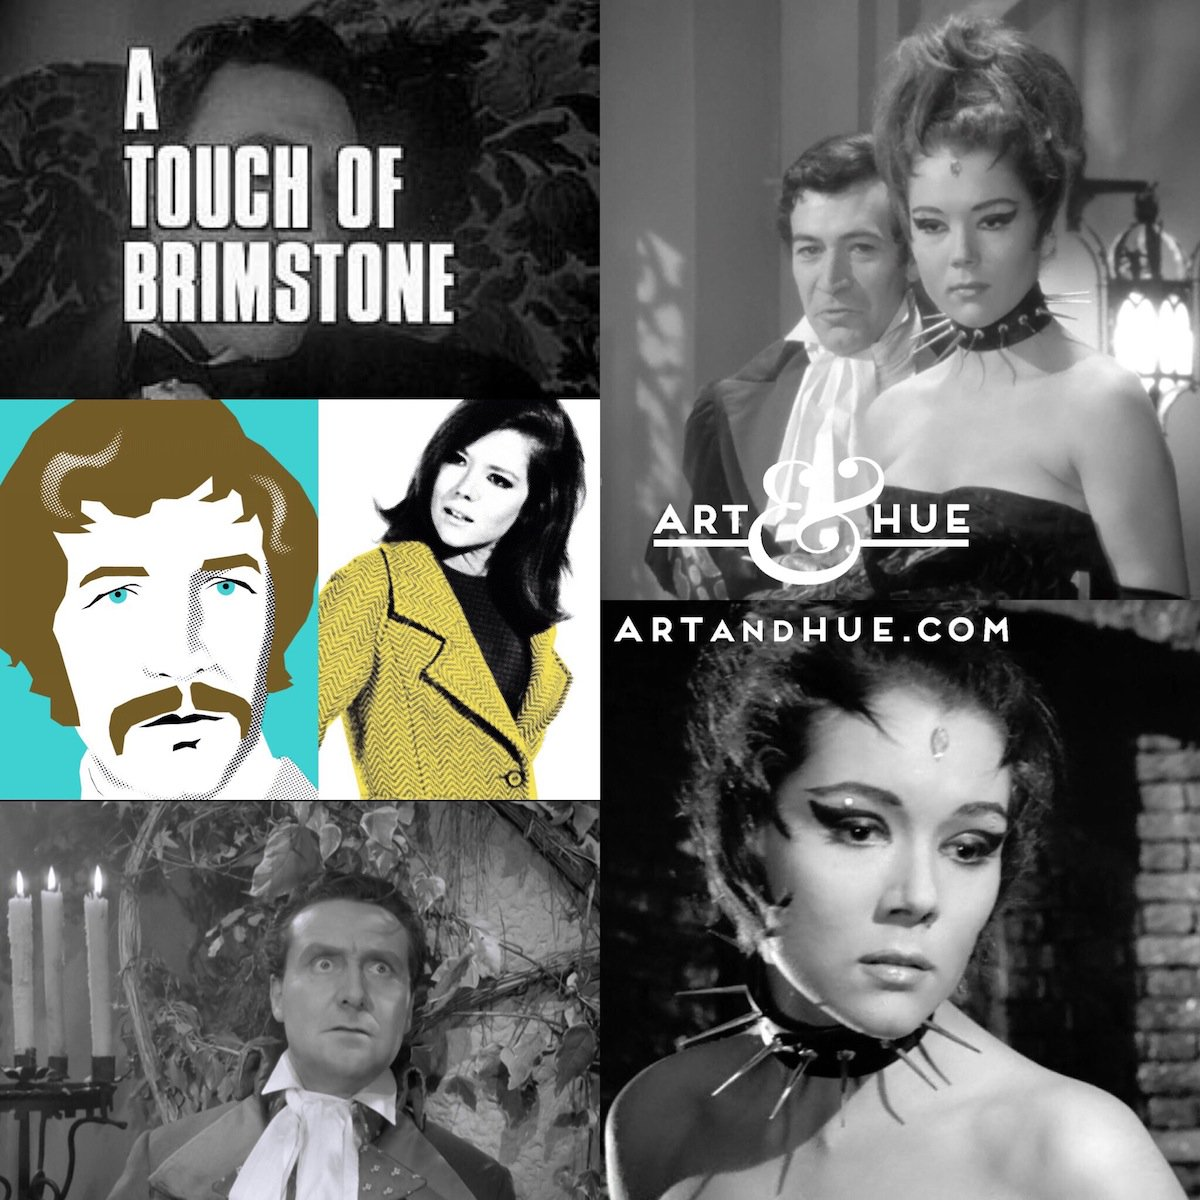 """On this day in 1966, The Avengers episode """"A Touch of Brimstone"""" aired on British TV for the first time.   http://artandhue.com/theavengers   #dianarigg #mrspeel #patrickmacnee #johnsteed #MadeAtElstree #OnThisDay #OTD #TheAvengers #ATouchofBrimstone #PeterWyngarde"""